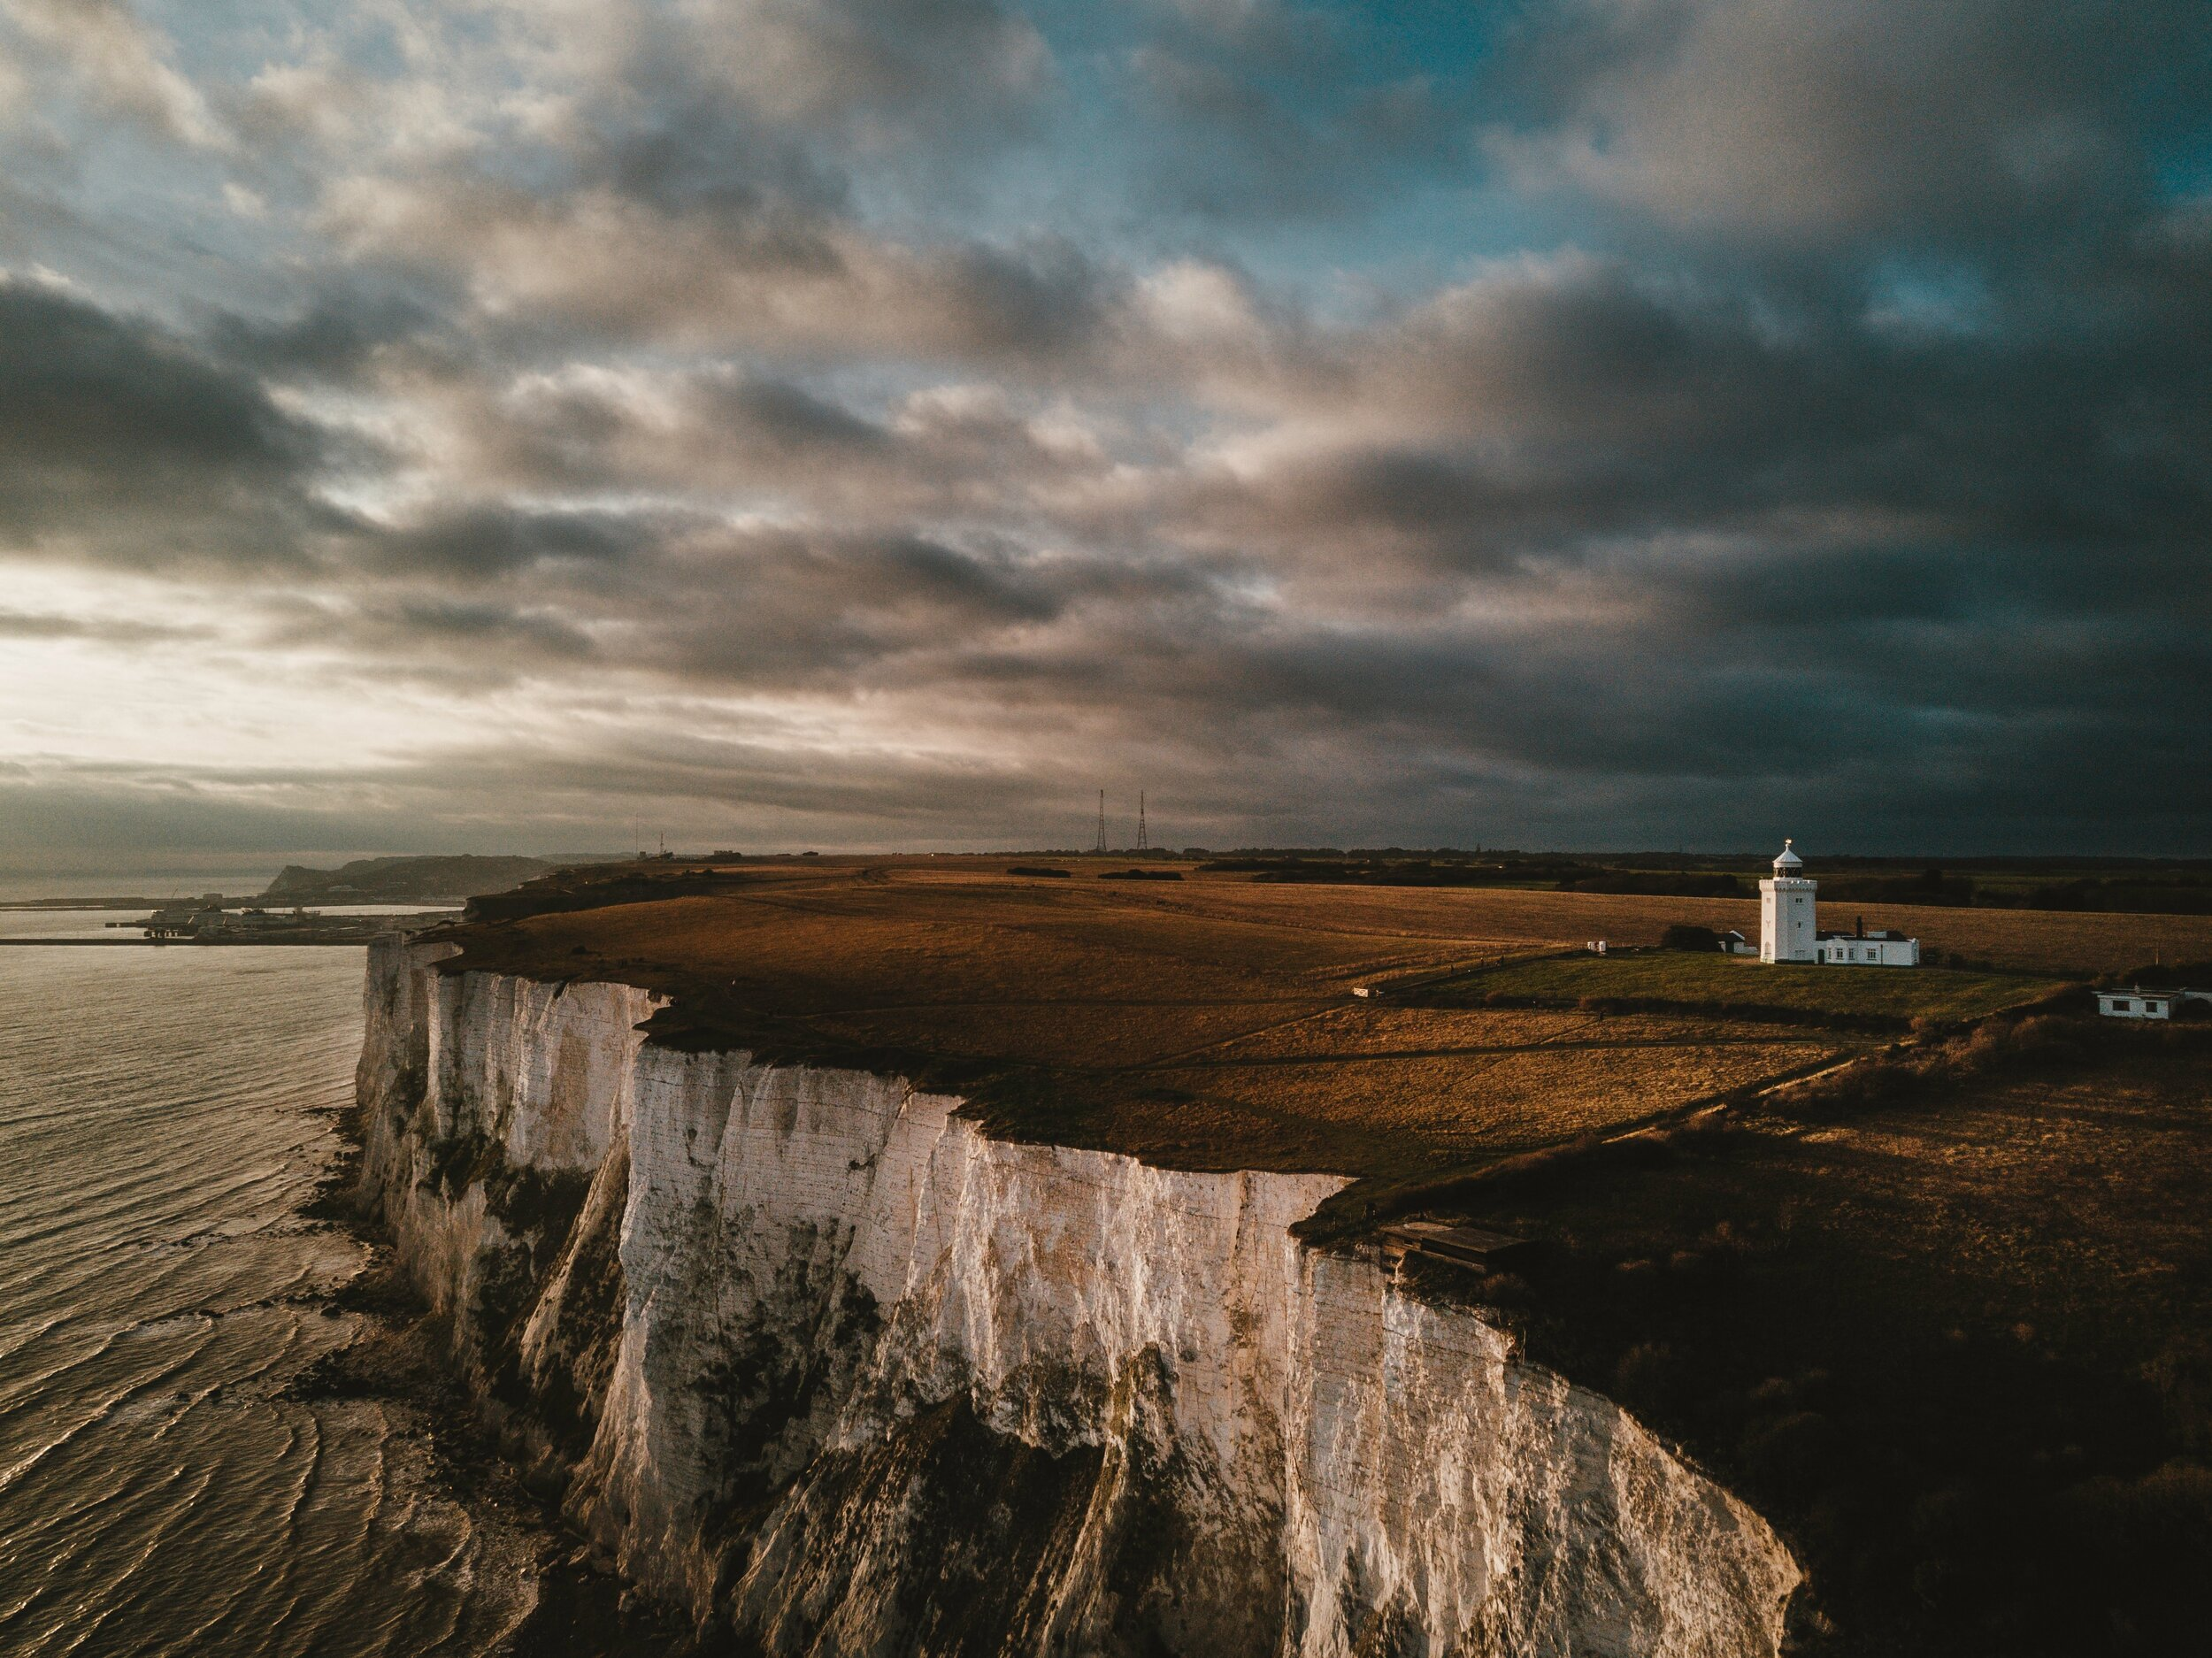 Motorhome Republic - The Greatest Natural Wonders of the United Kingdom